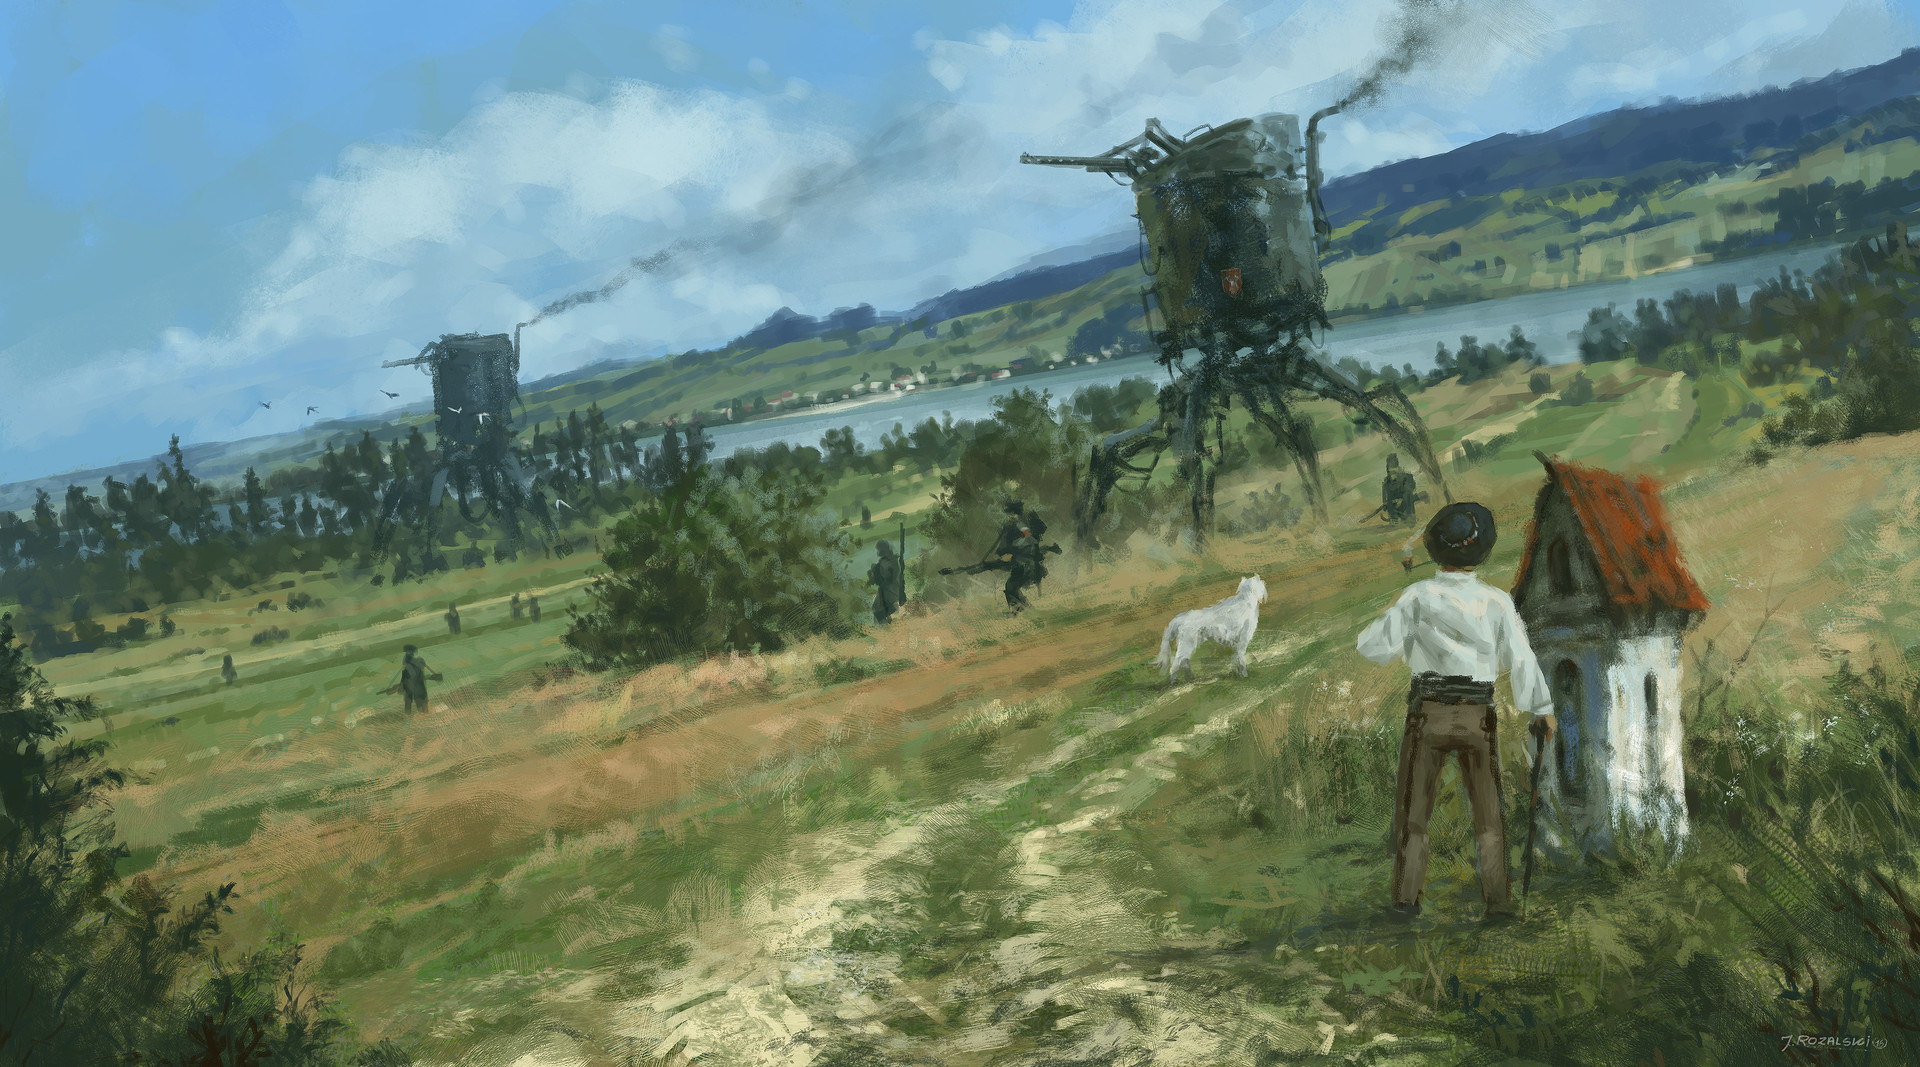 Jakub rozalski 1920 green fields